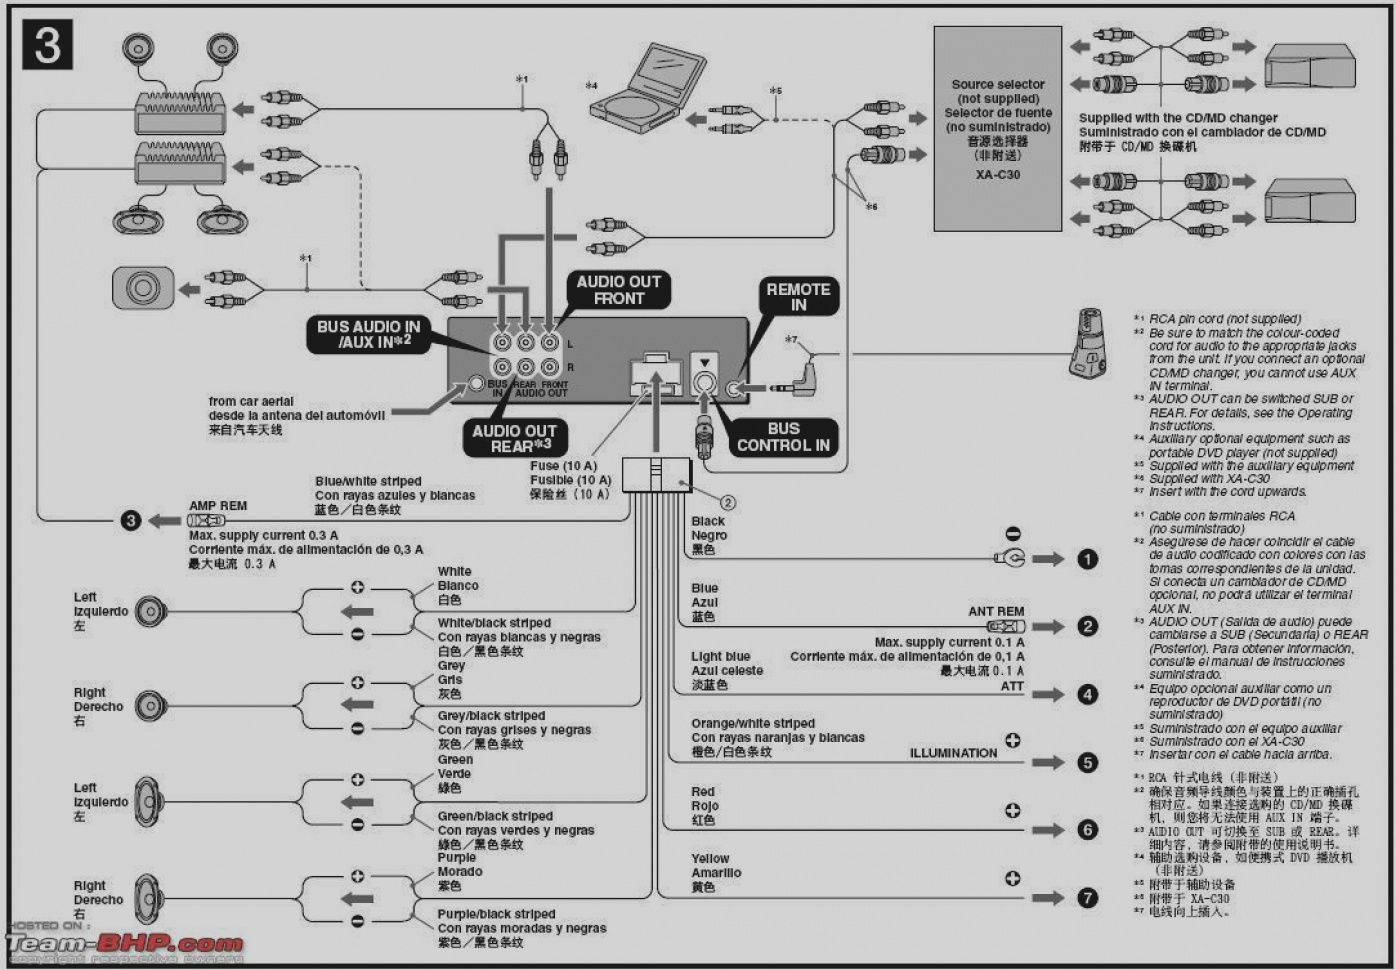 medium resolution of sony xplod cdx gt300 wiring diagram color wiring diagram sony cdx gt300 wiring harness